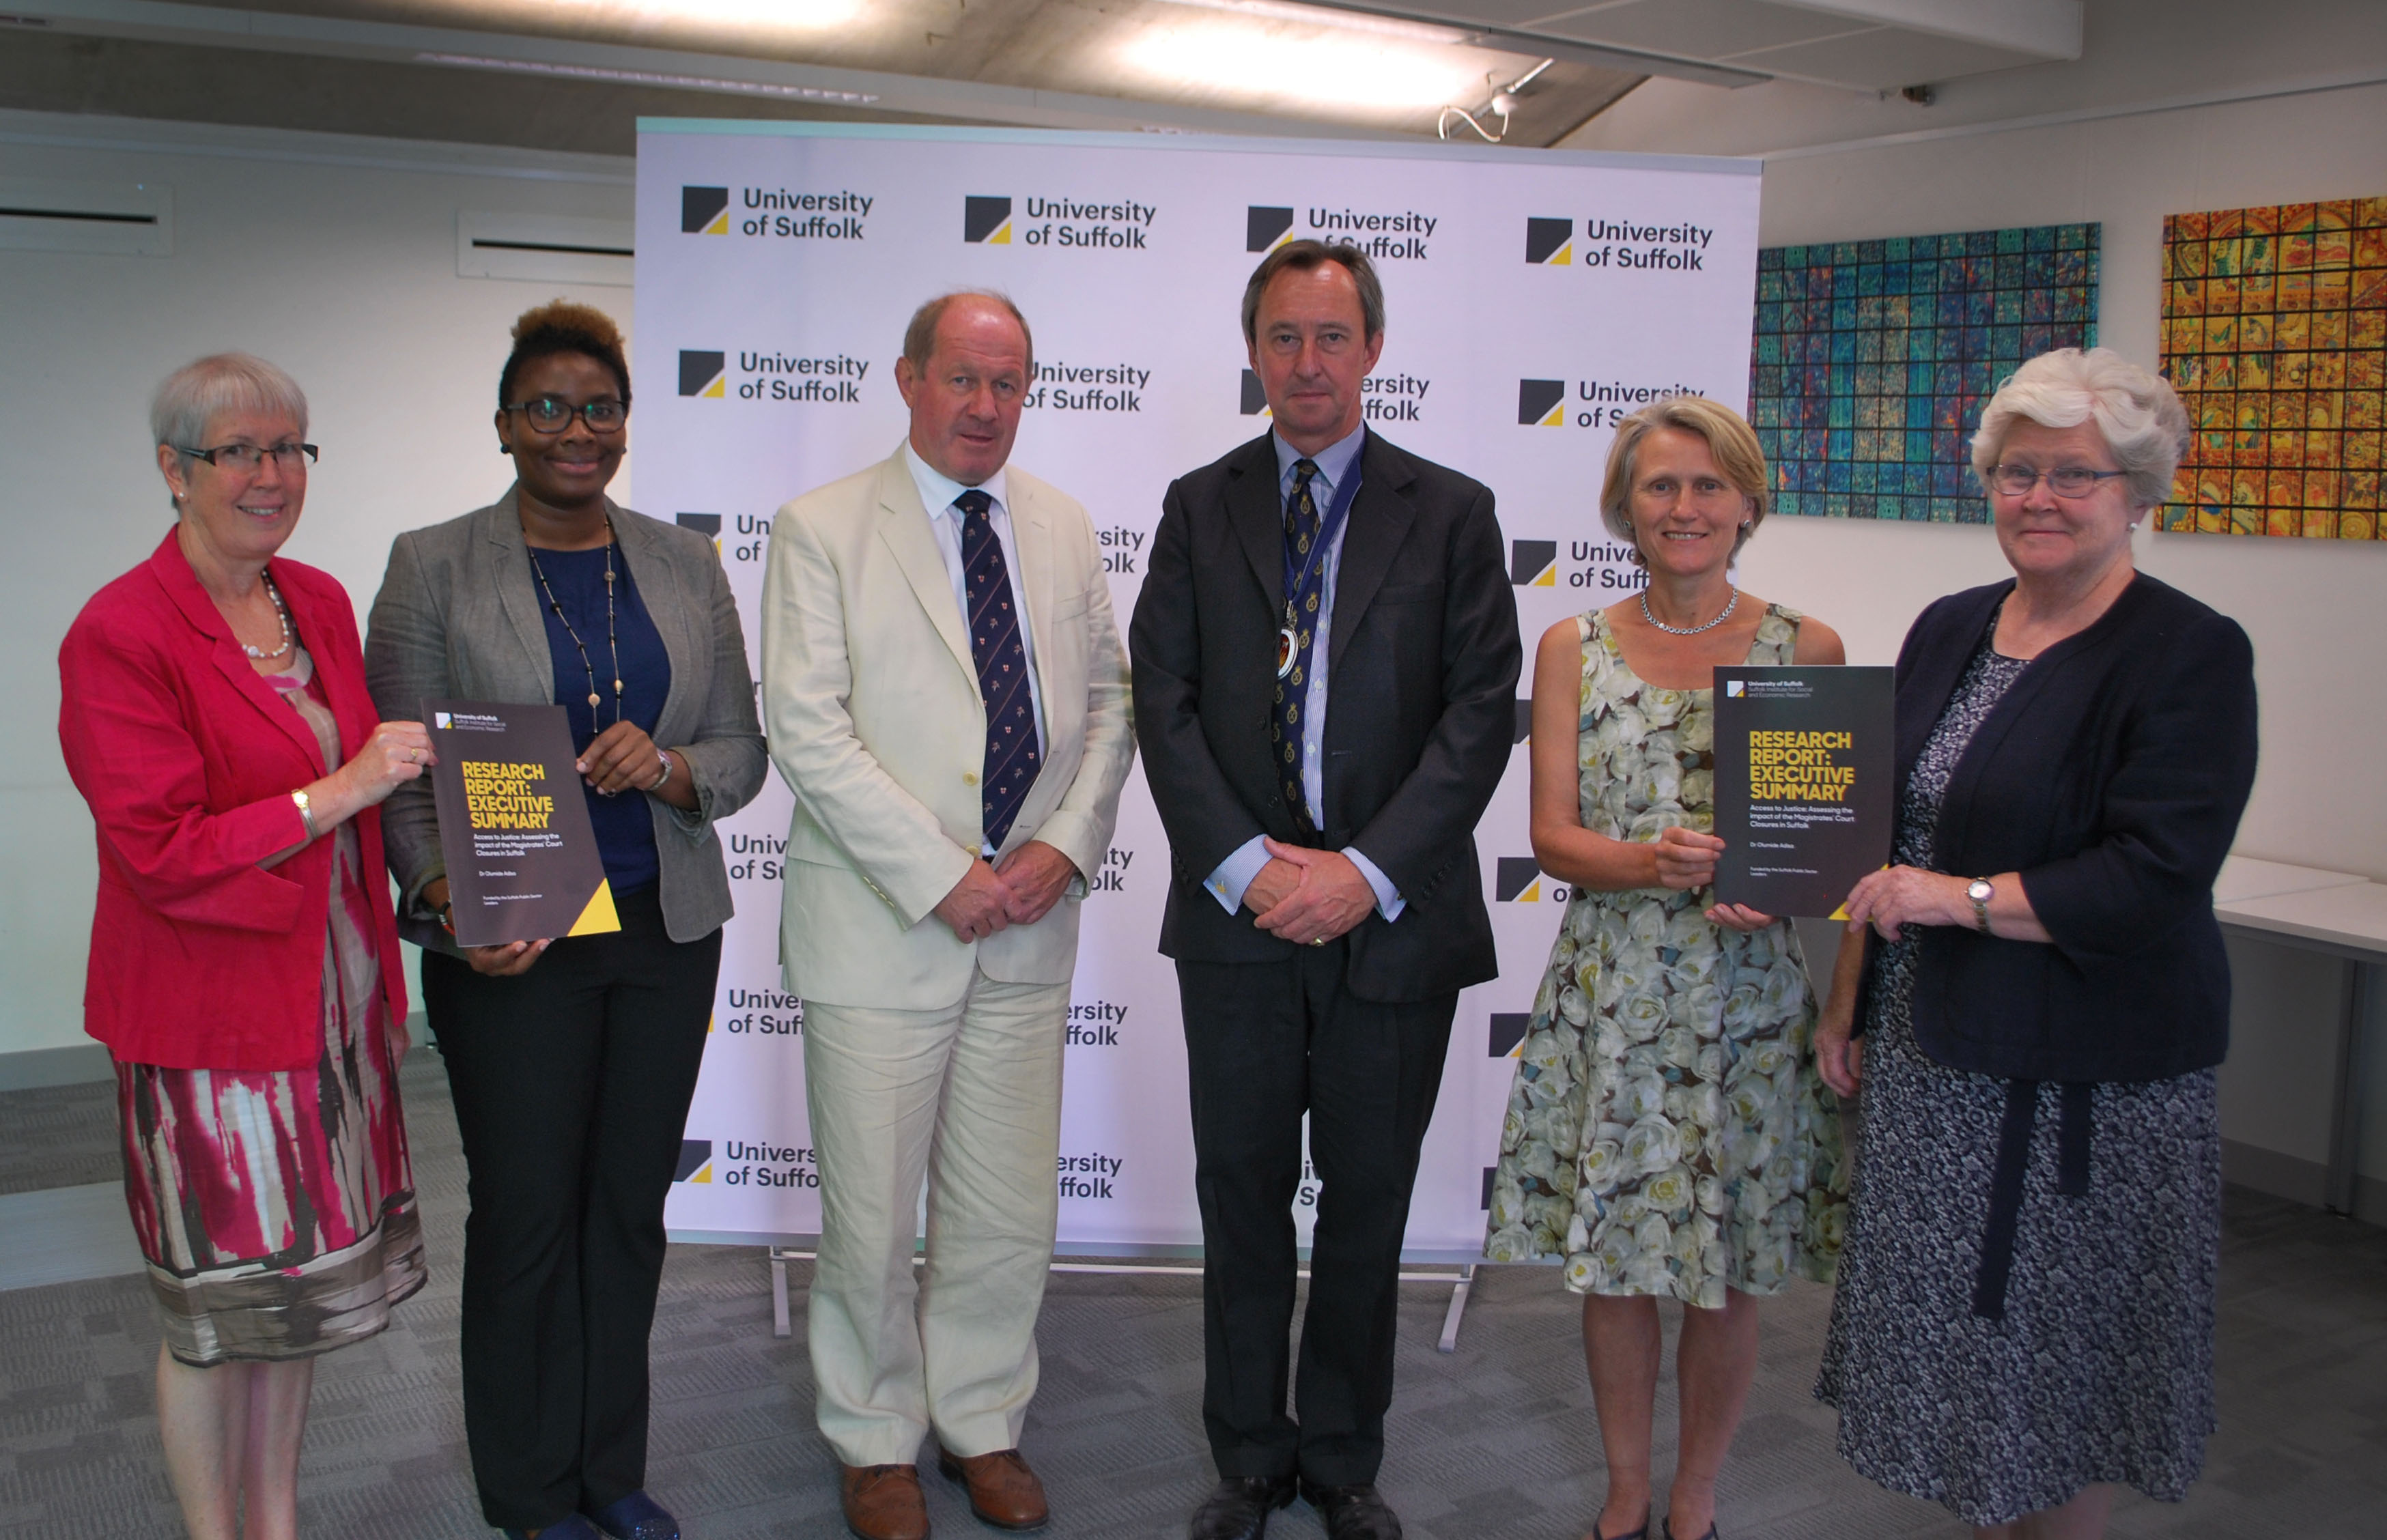 Access to Justice launch photo